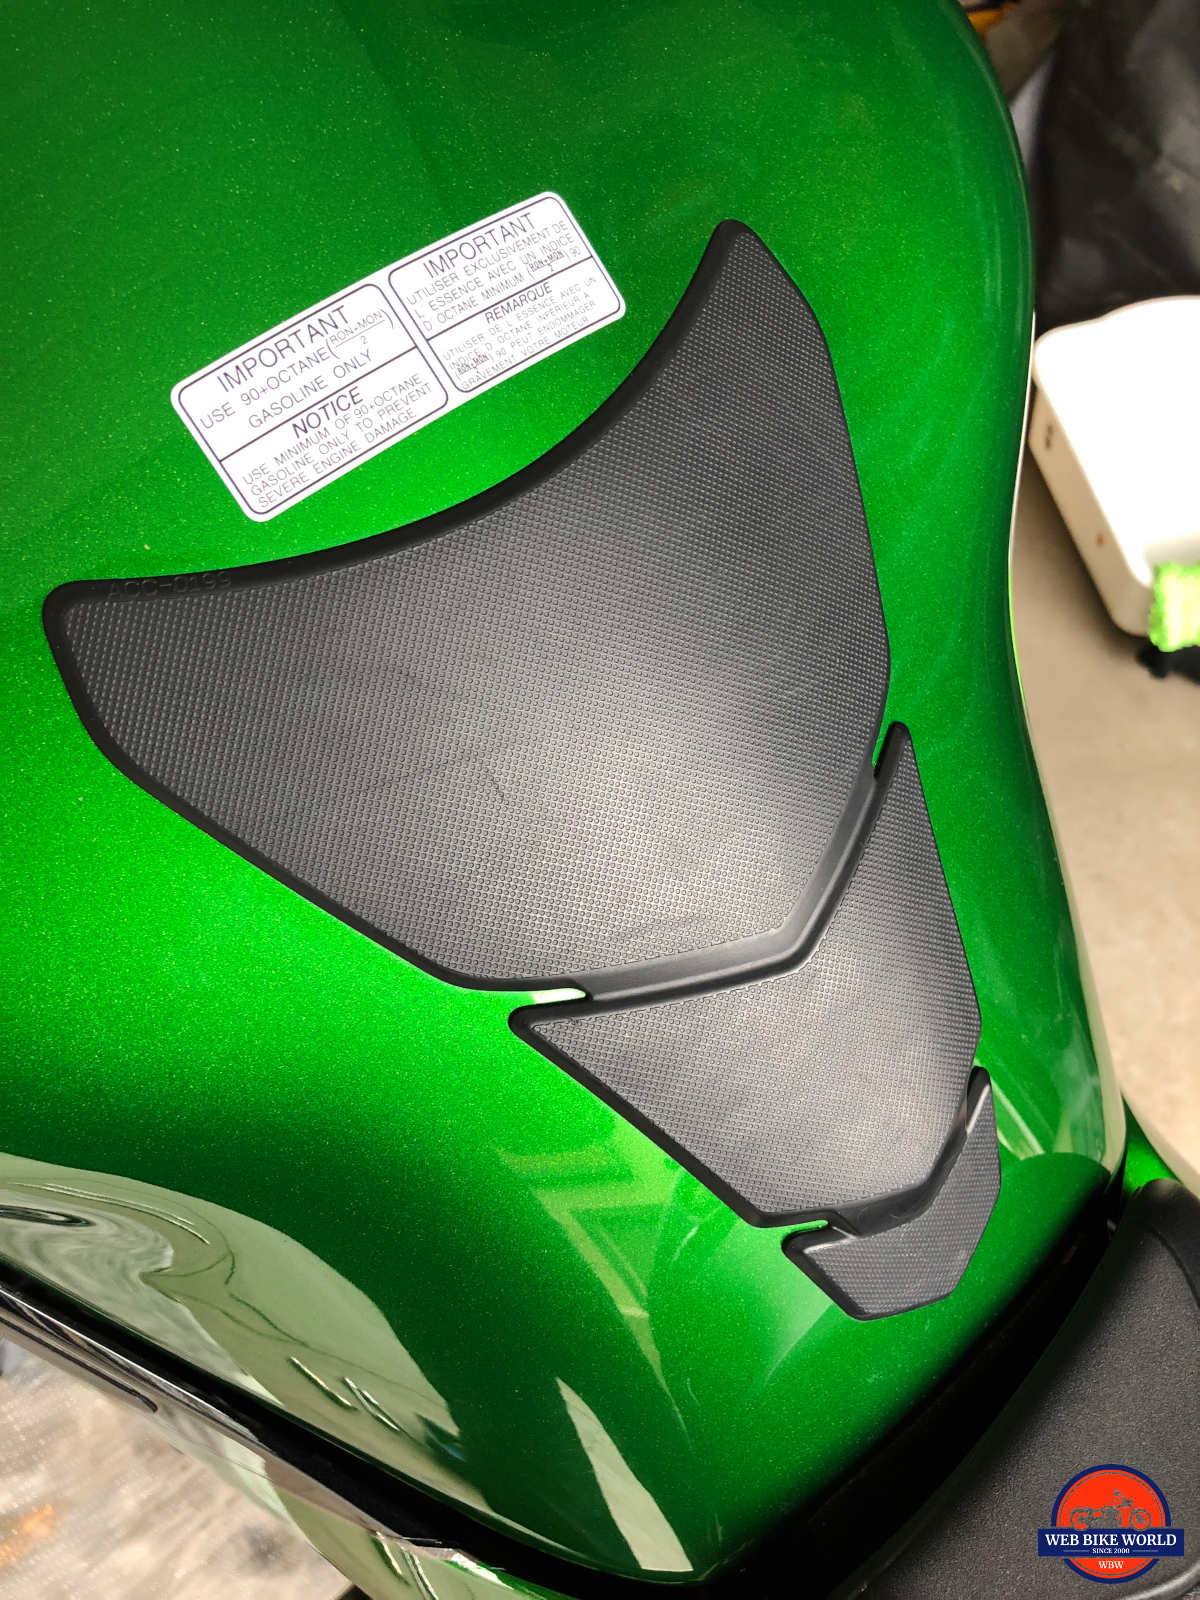 2018 Kawasaki Ninja H2SXSE gas tank protector with scratches on it.